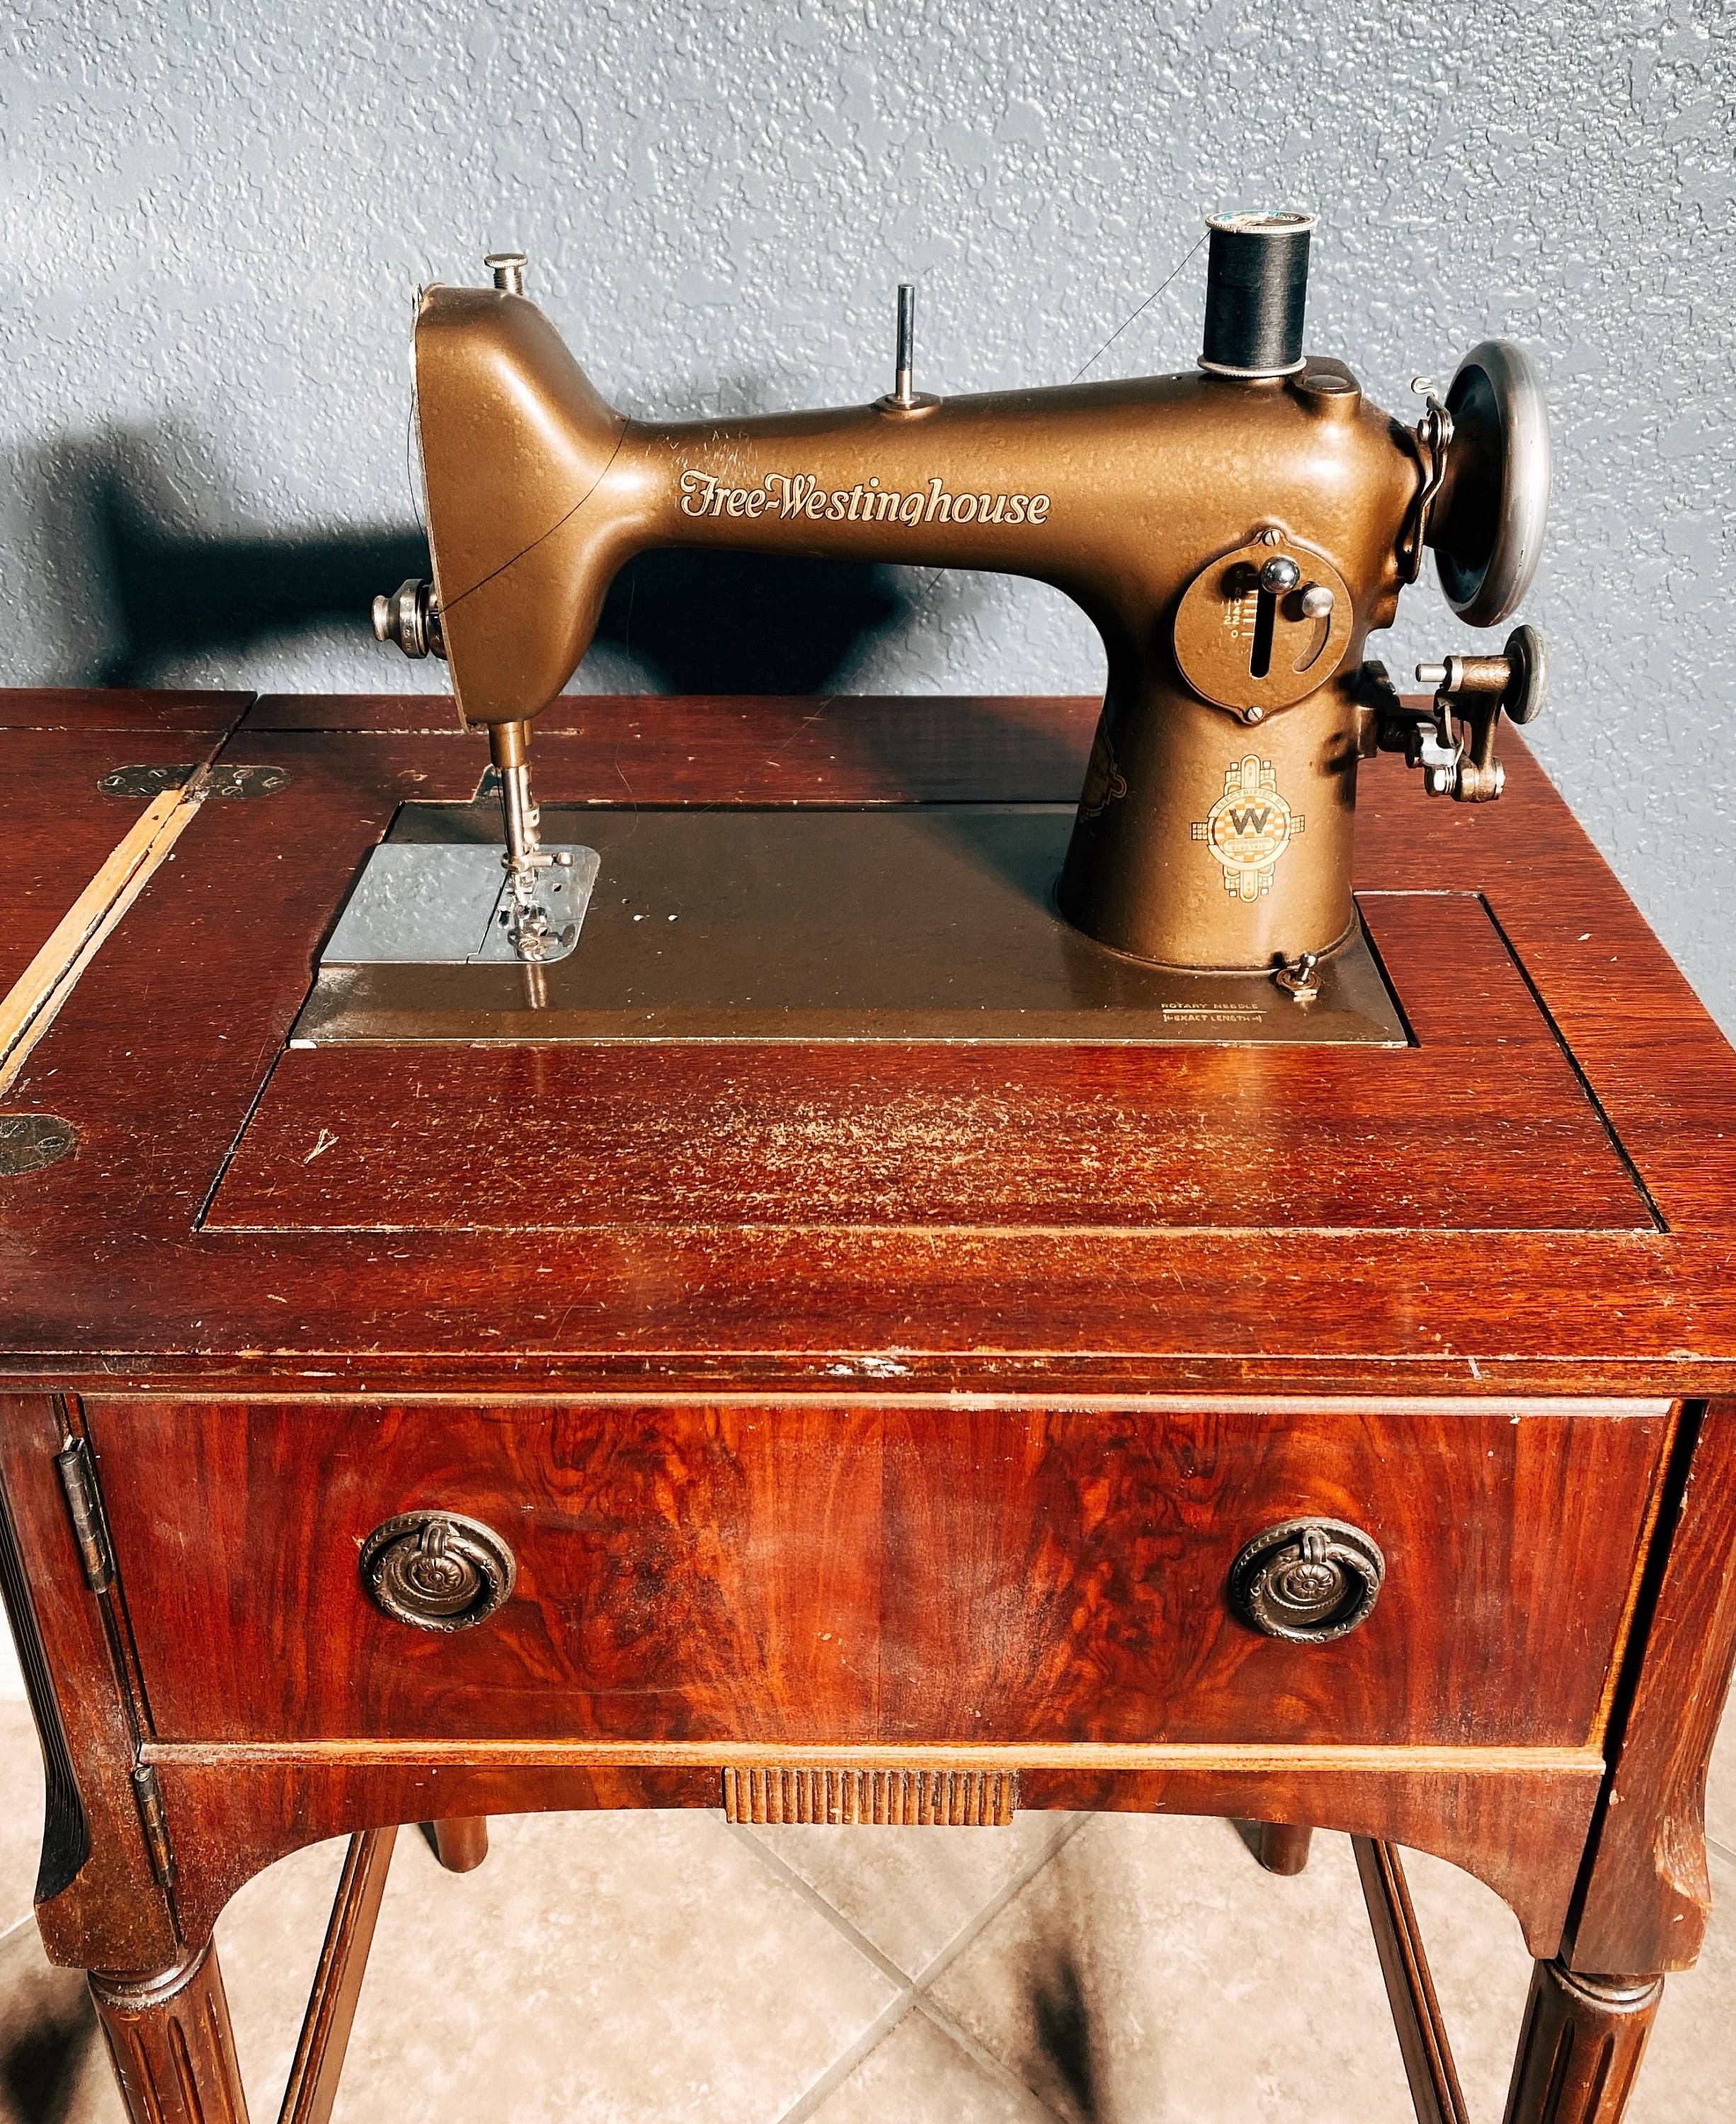 300+ Free Sewing Machine & Sewing Images - Pixabay